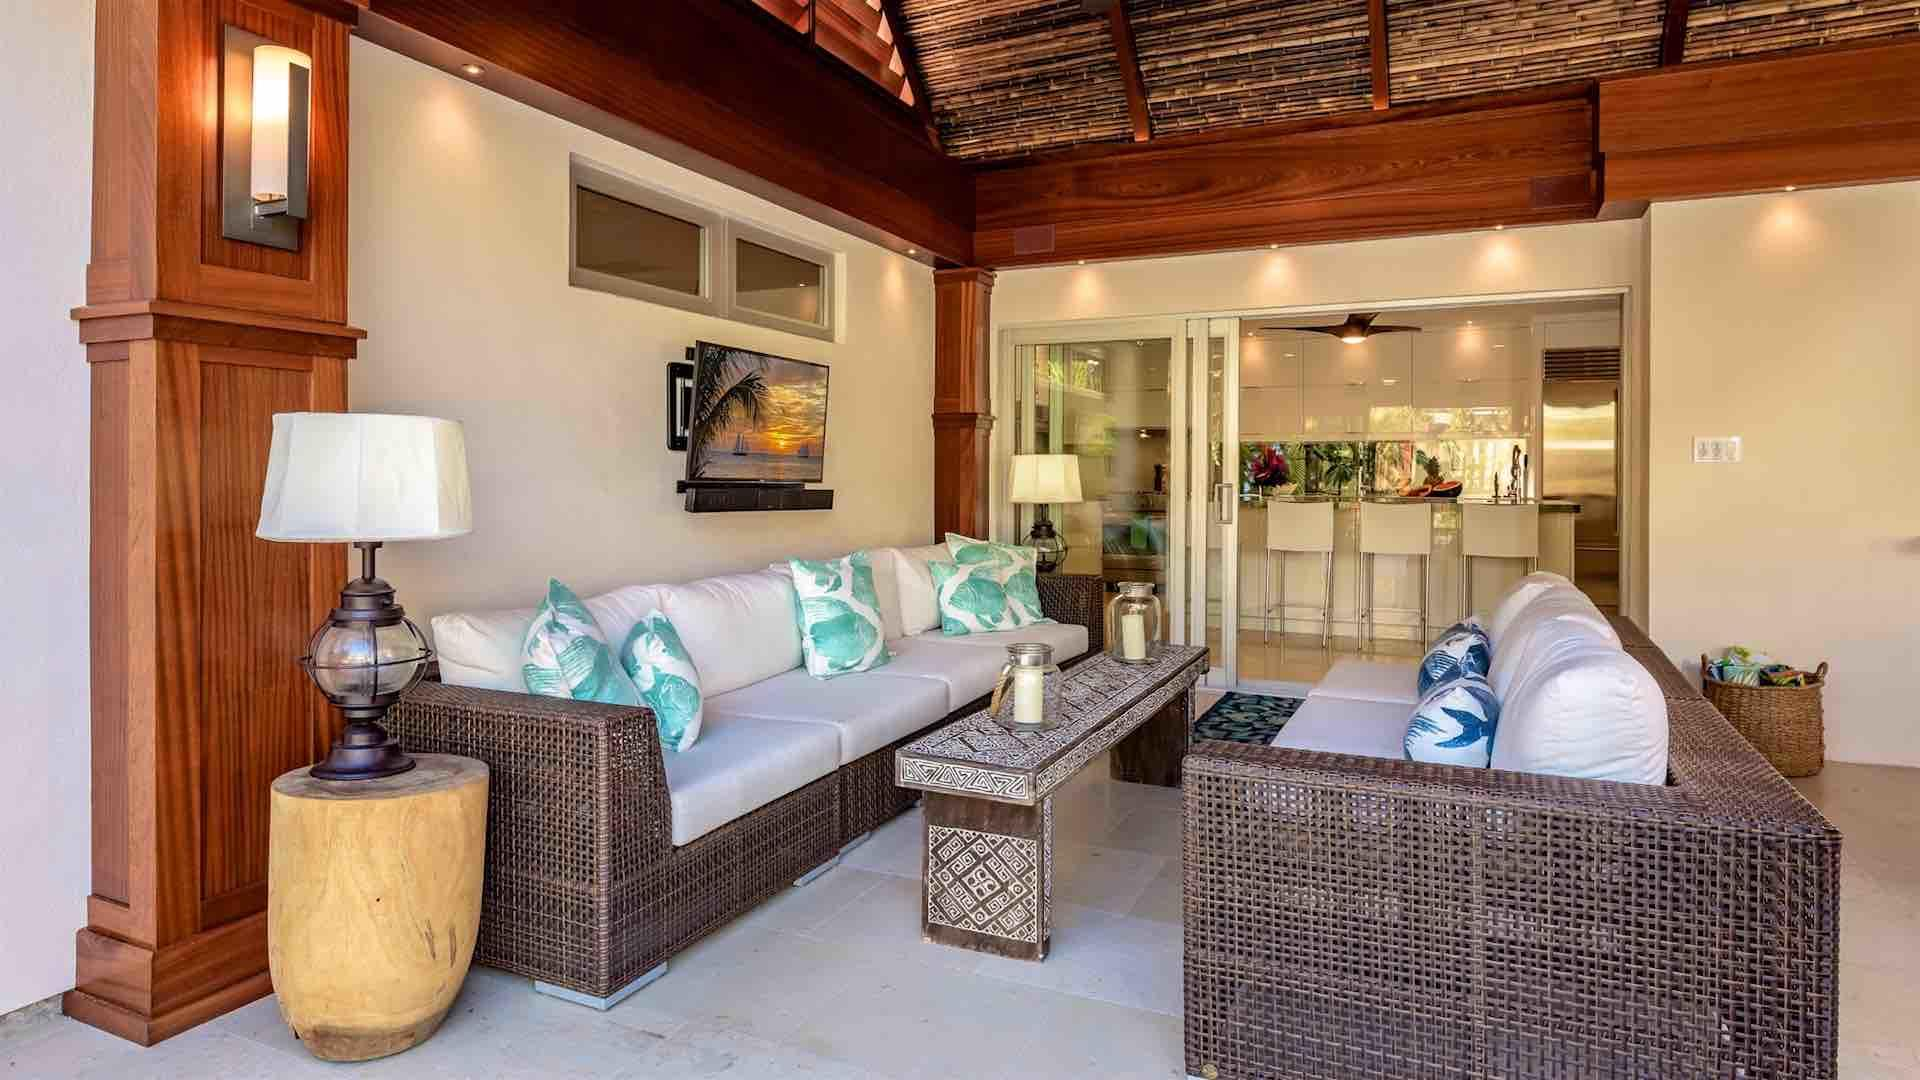 The covered lanai features a large flat screen TV and comfortable outdoor sofas...